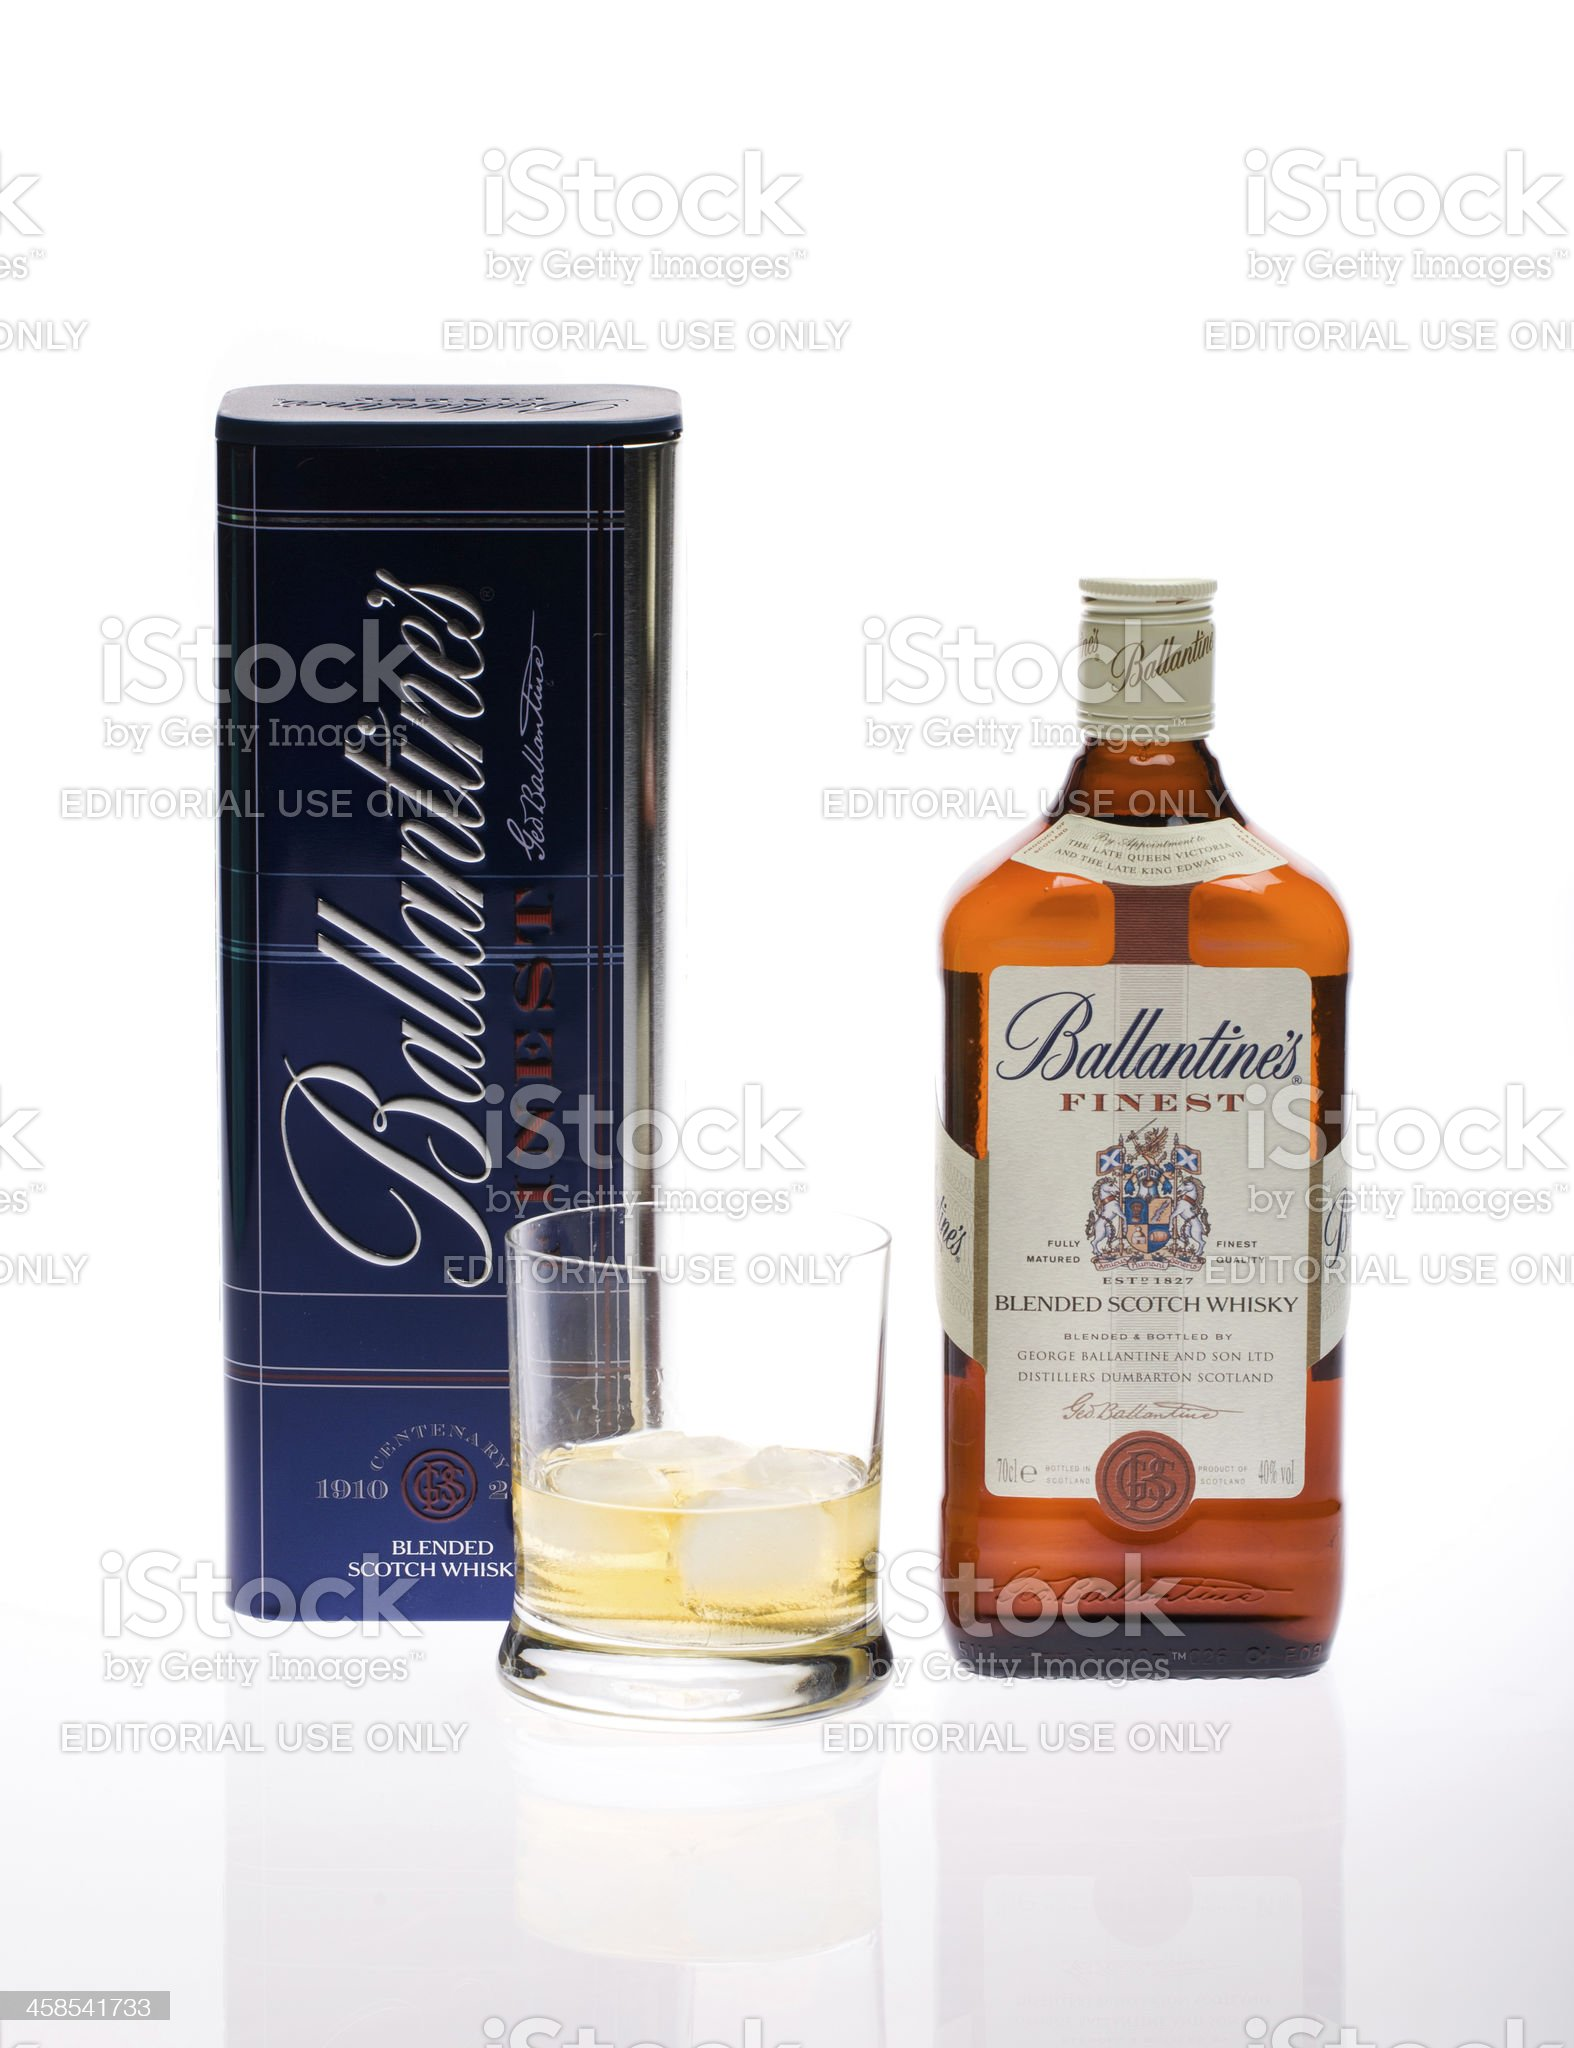 Bottle of scotch whiskey Ballantine's and a glass royalty-free stock photo